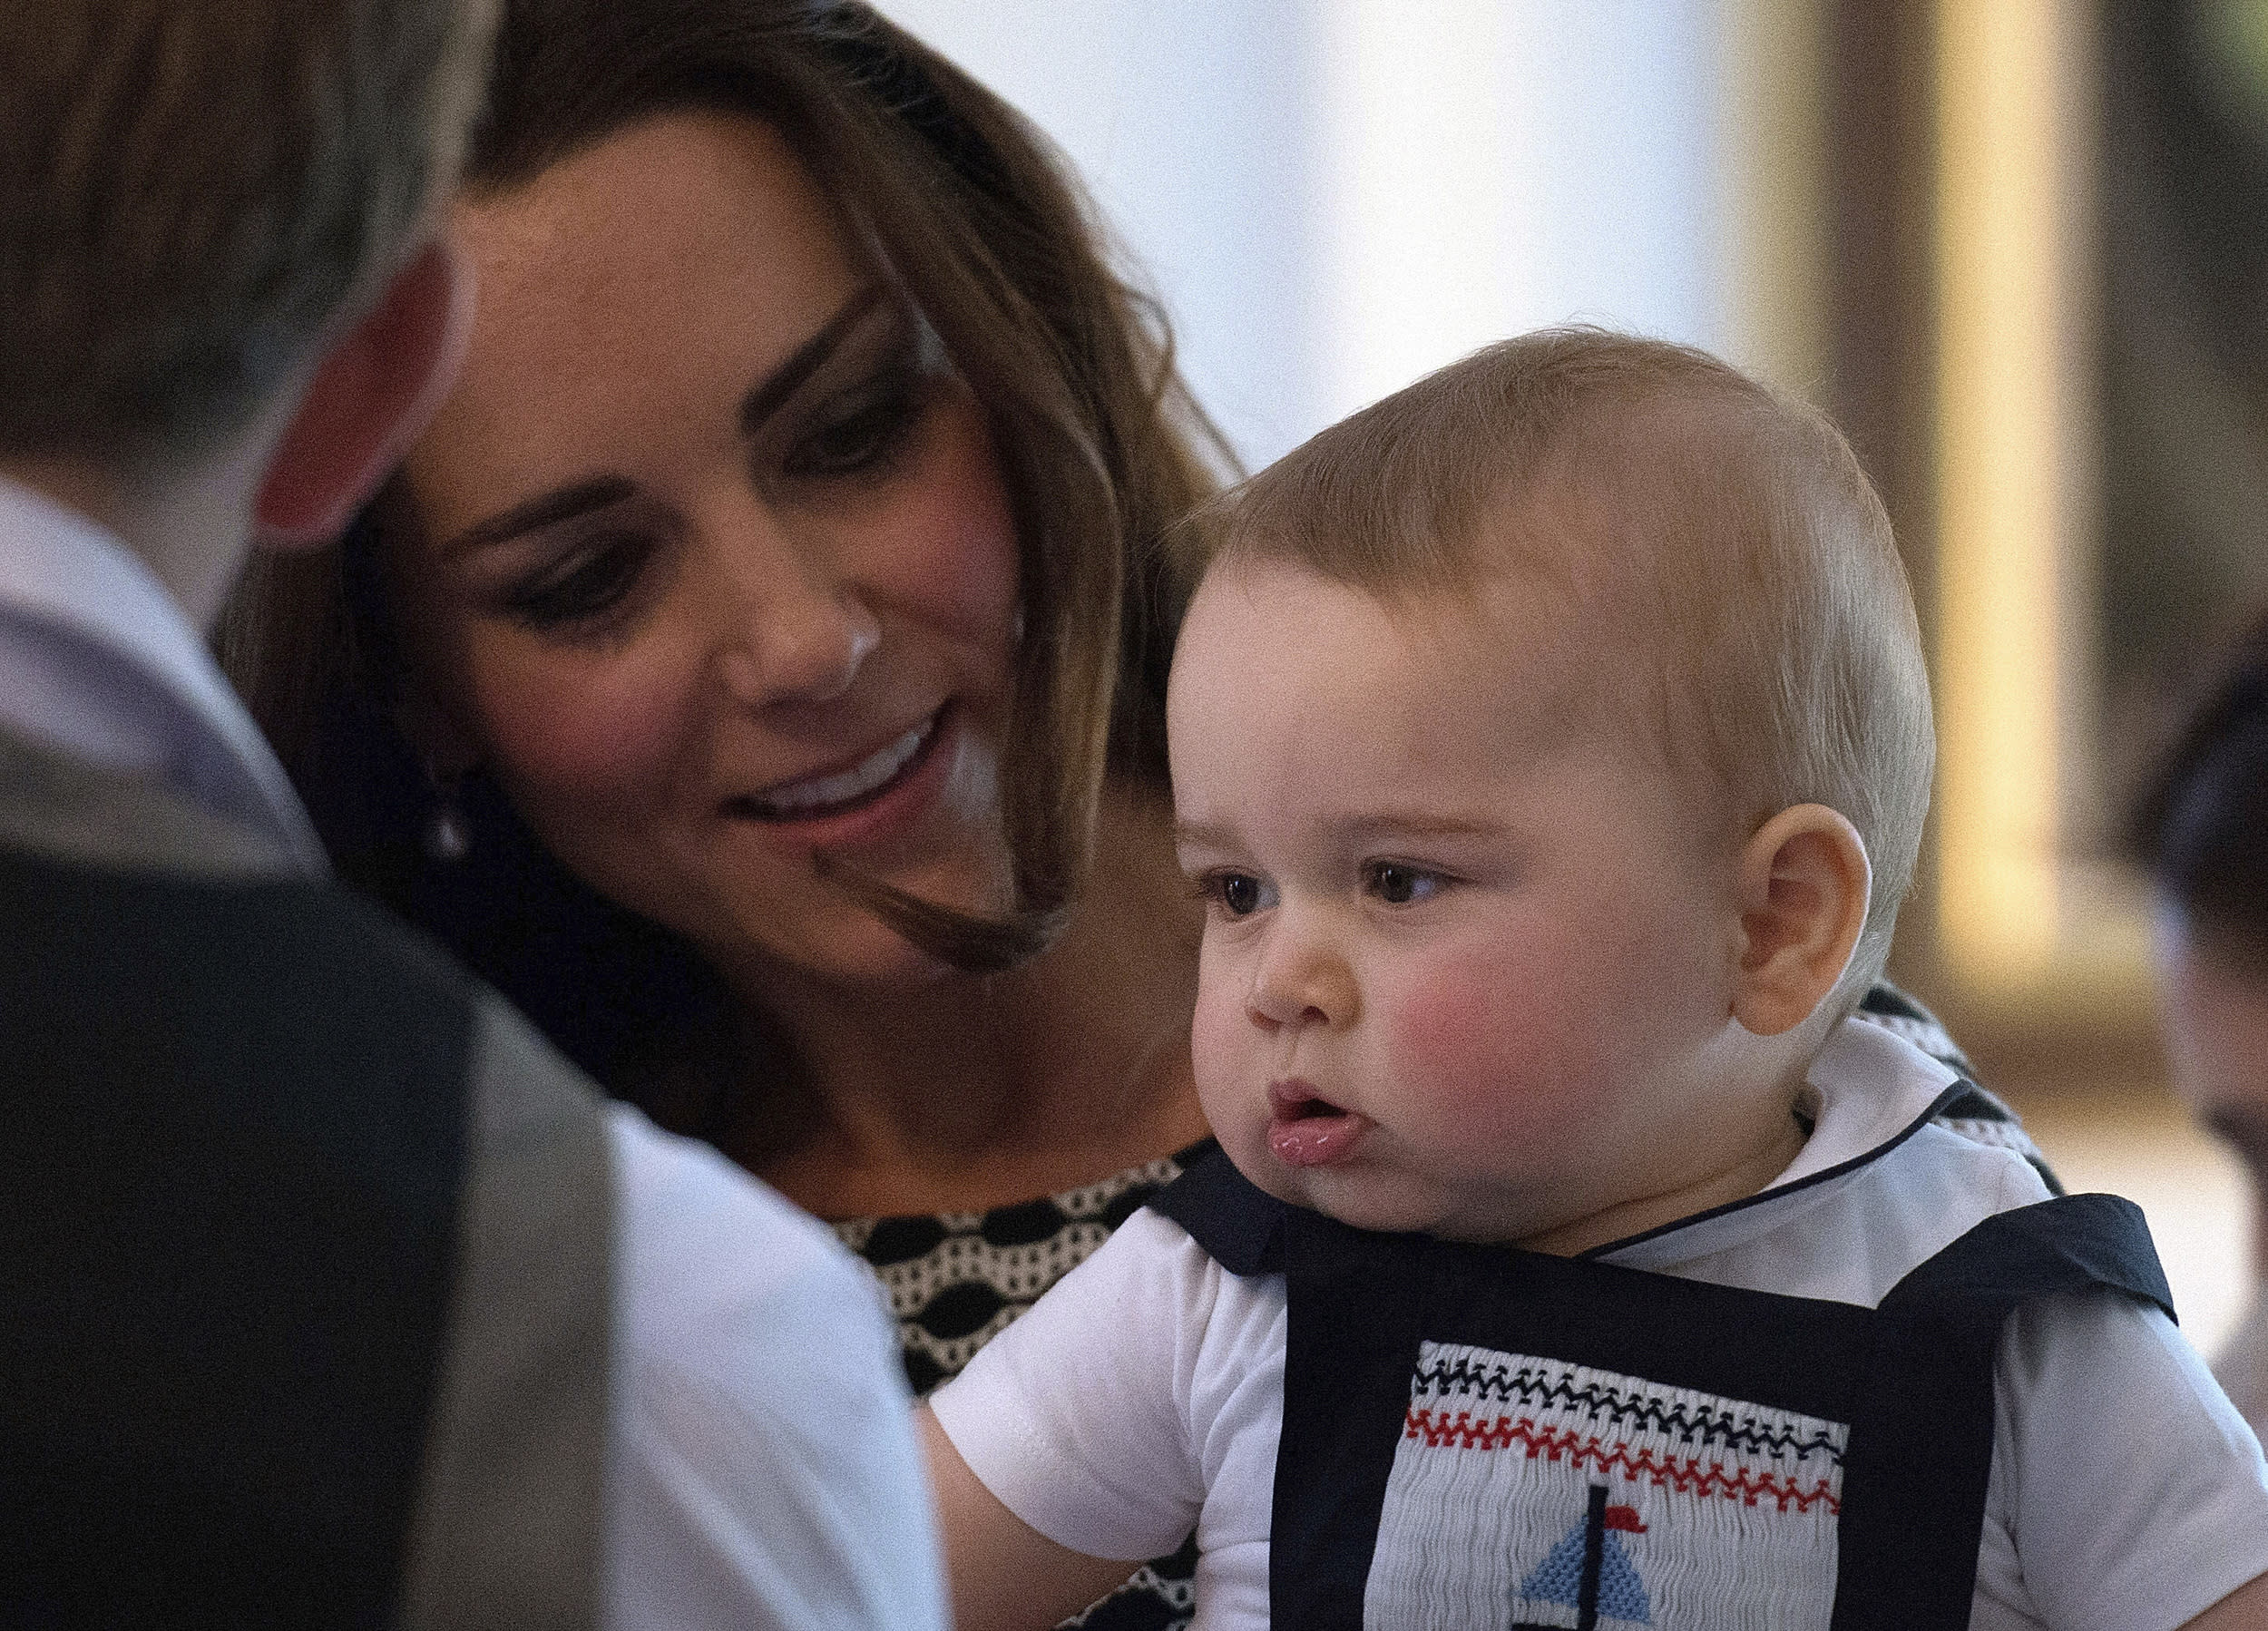 Catherine, Duchess of Cambridge, holds her son Prince George during a Plunket nurse and parents' group event at Government House in Wellington April 9, 2014. Plunket is a national not-for-profit organisation that provides care for children and families in New Zealand. Britain's Prince William and his wife Kate are undertaking a 19-day official visit to New Zealand and Australia with their son George.    REUTERS/Marty Melville/Pool    (NEW ZEALAND - Tags: ROYALS ENTERTAINMENT)